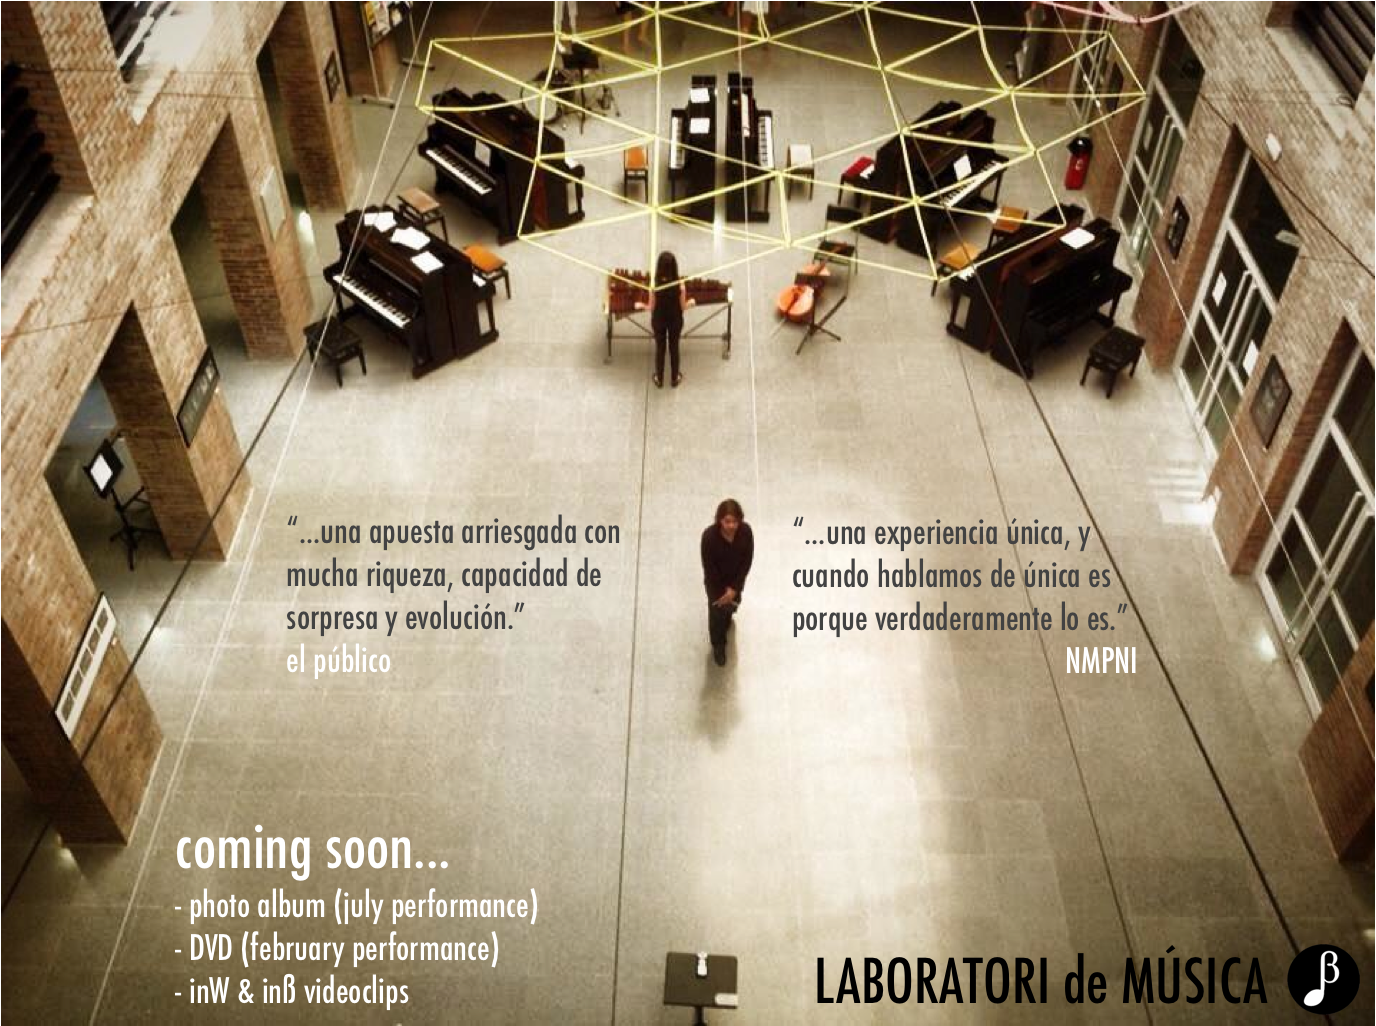 laboratori coming soon